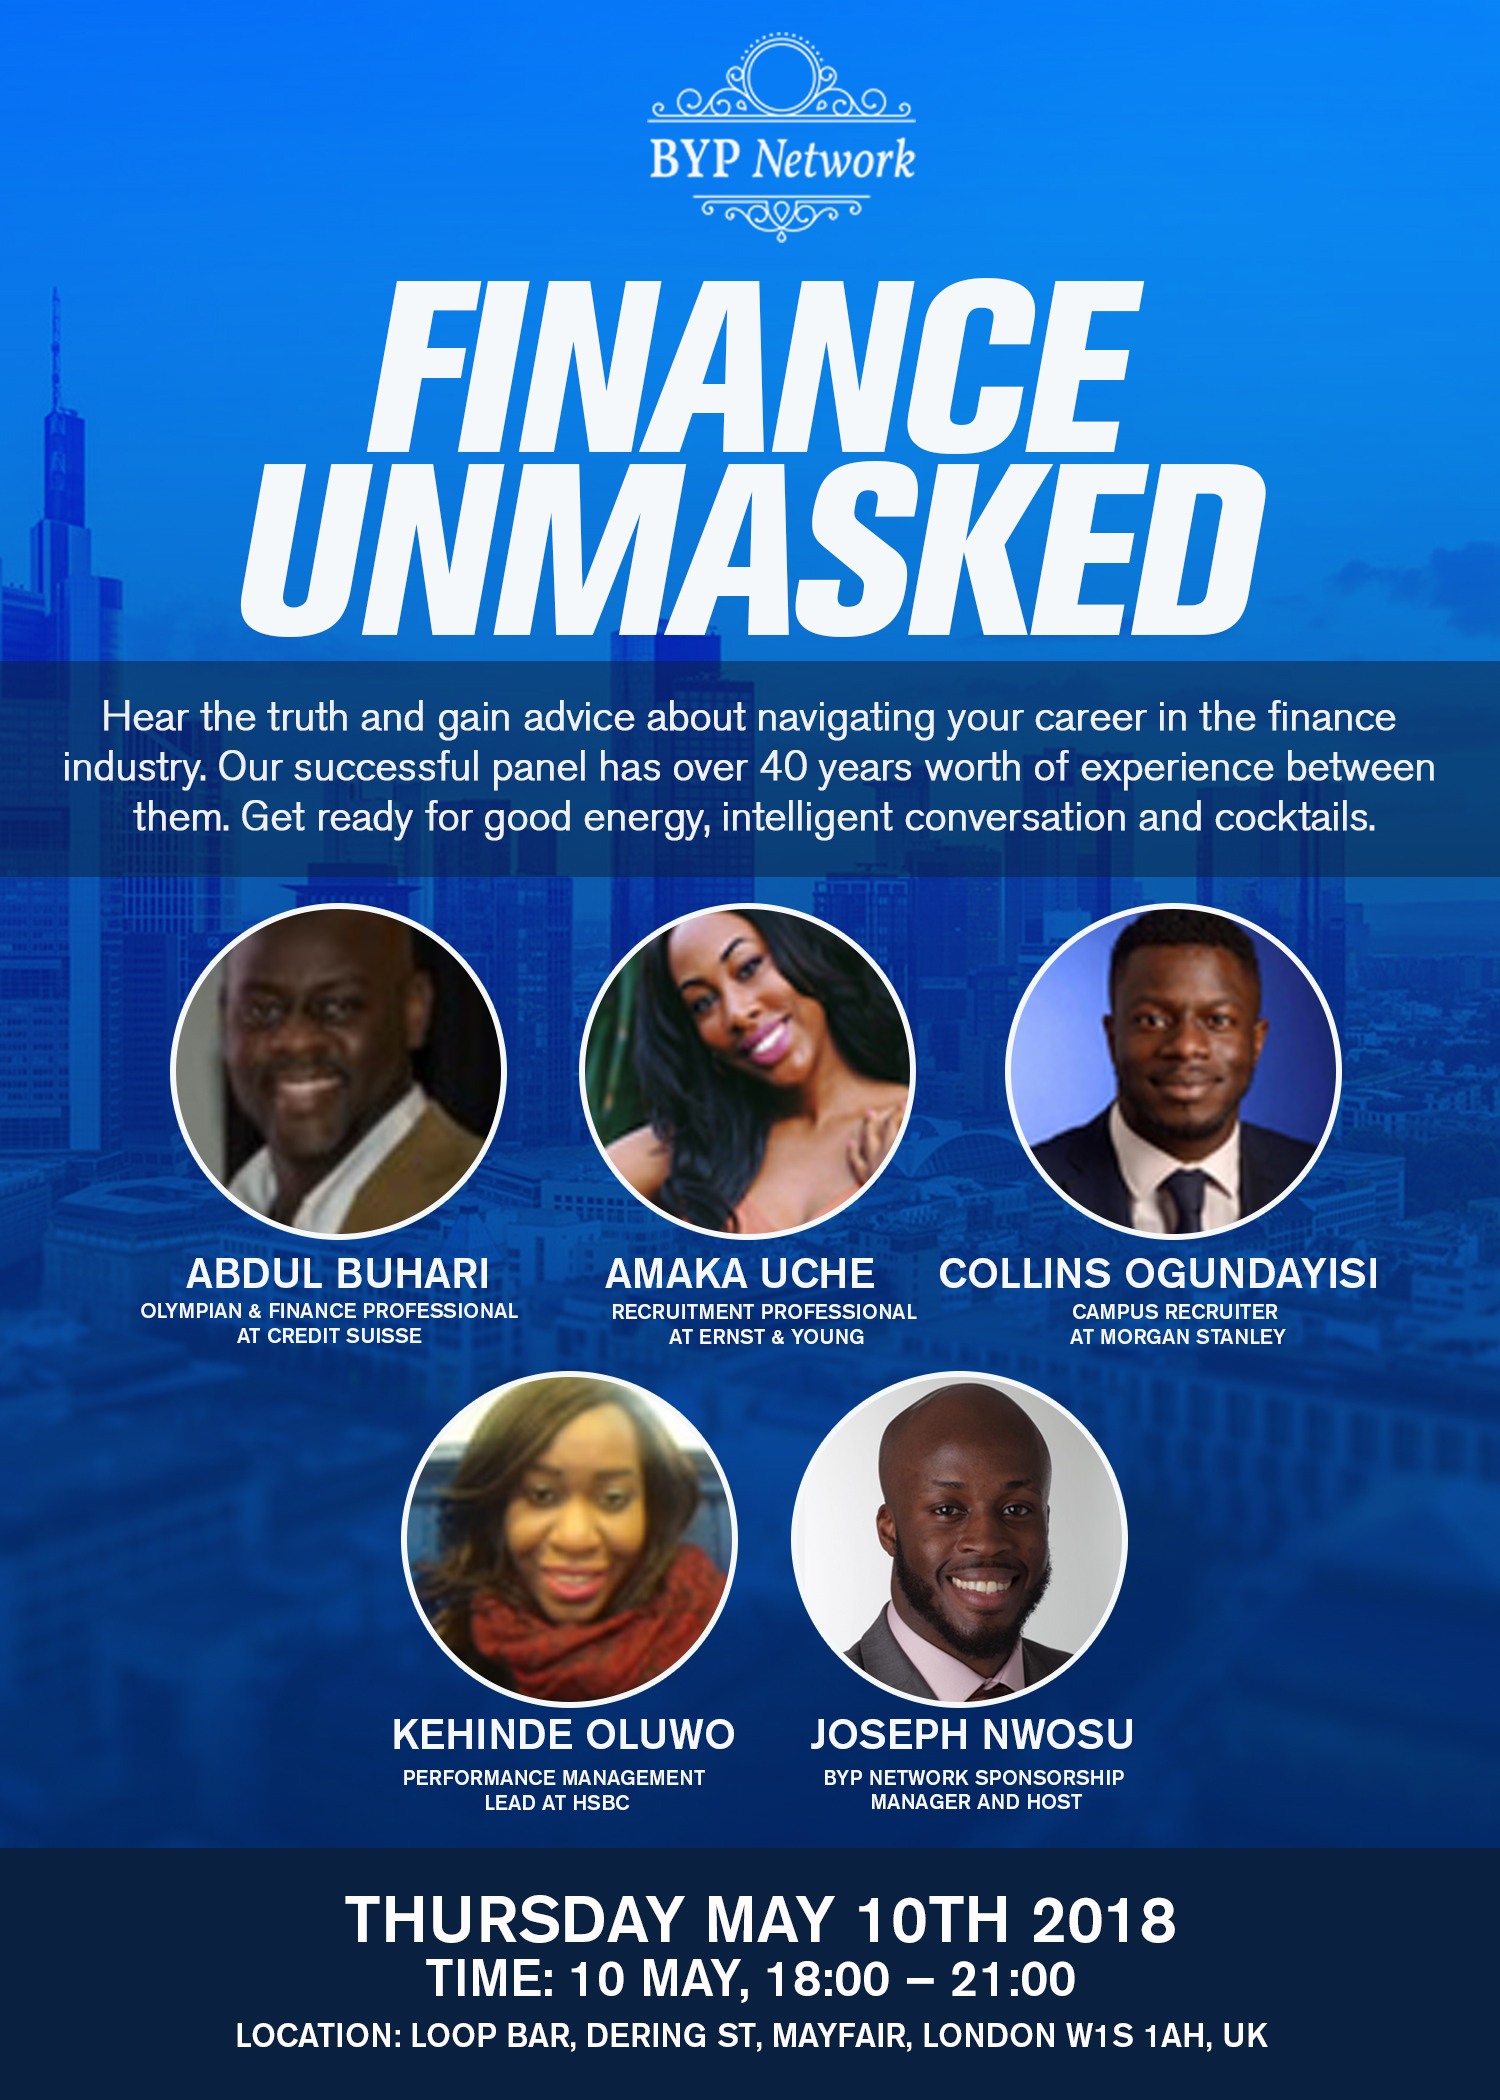 Finance Unmasked